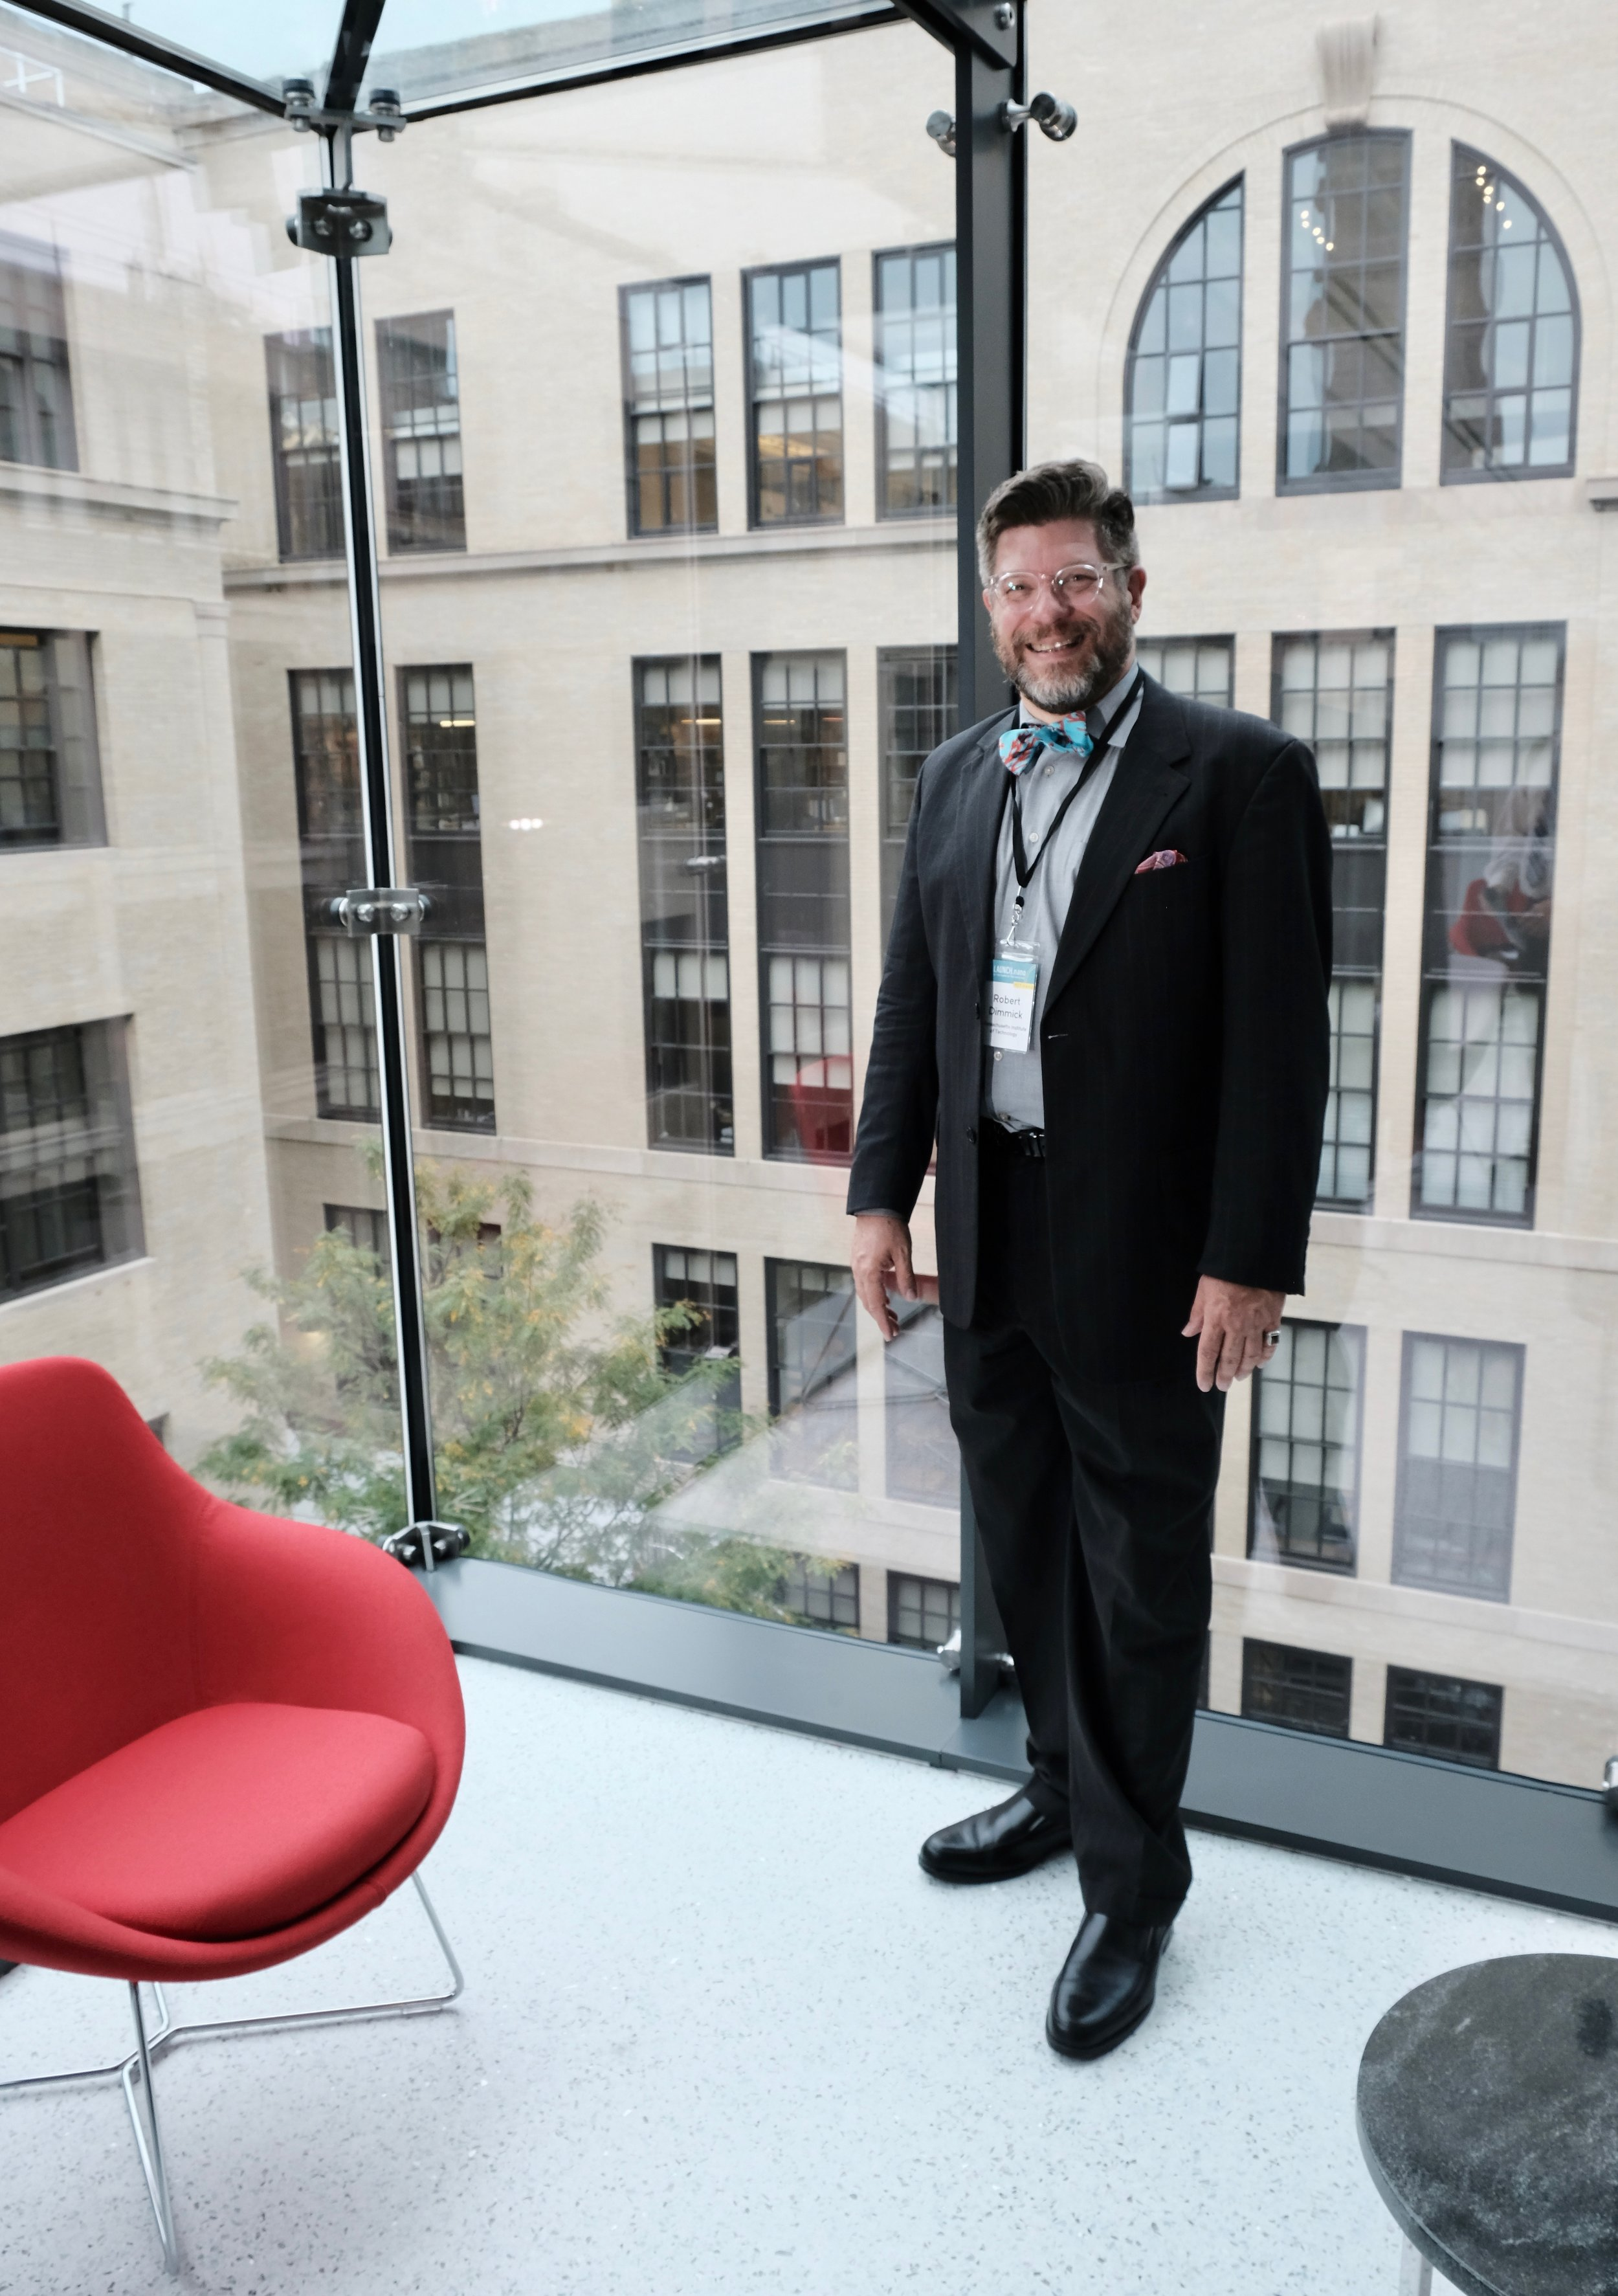 October, 2018, at the opening of the glam new mit.nano facility. My right hand is over the window of my old office in 10-140 (1996-1999 and 2003-2005?) and my left shoulder is by my old office in 10-370 (2005?-2008).